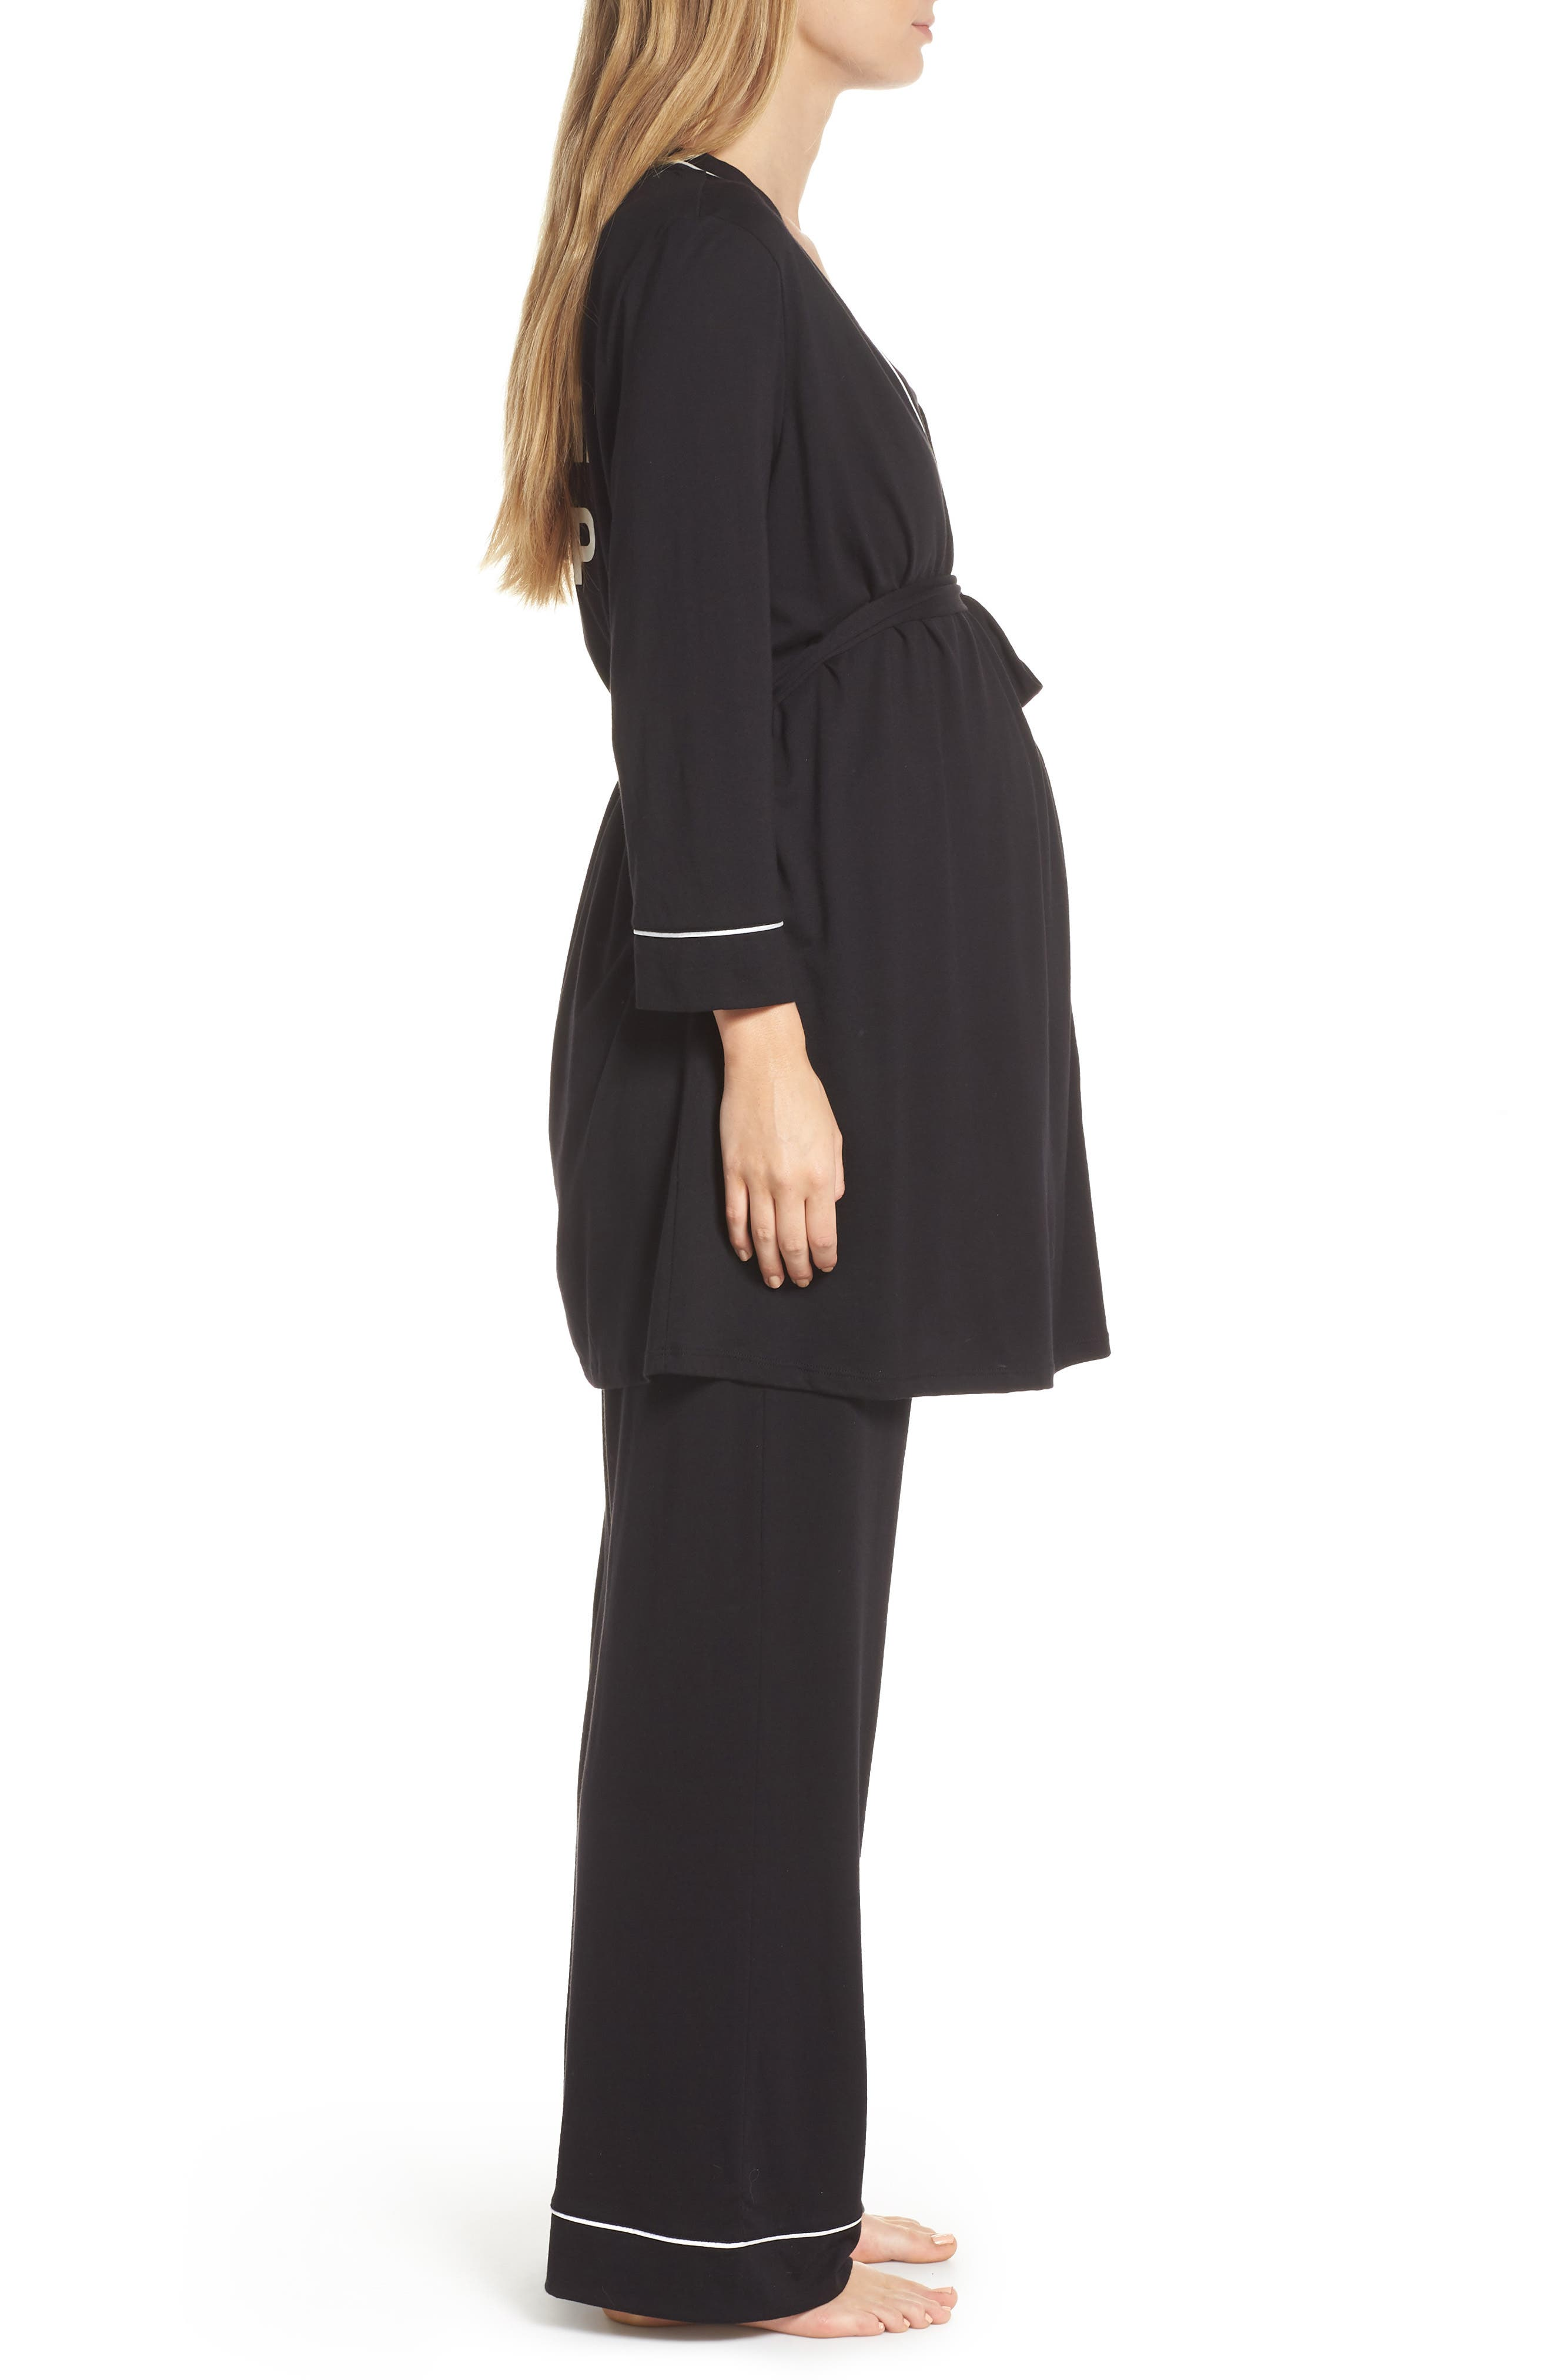 Let Me Sleep Maternity/Nursing Pajamas & Robe Set,                             Alternate thumbnail 3, color,                             BLACK/ IVORY